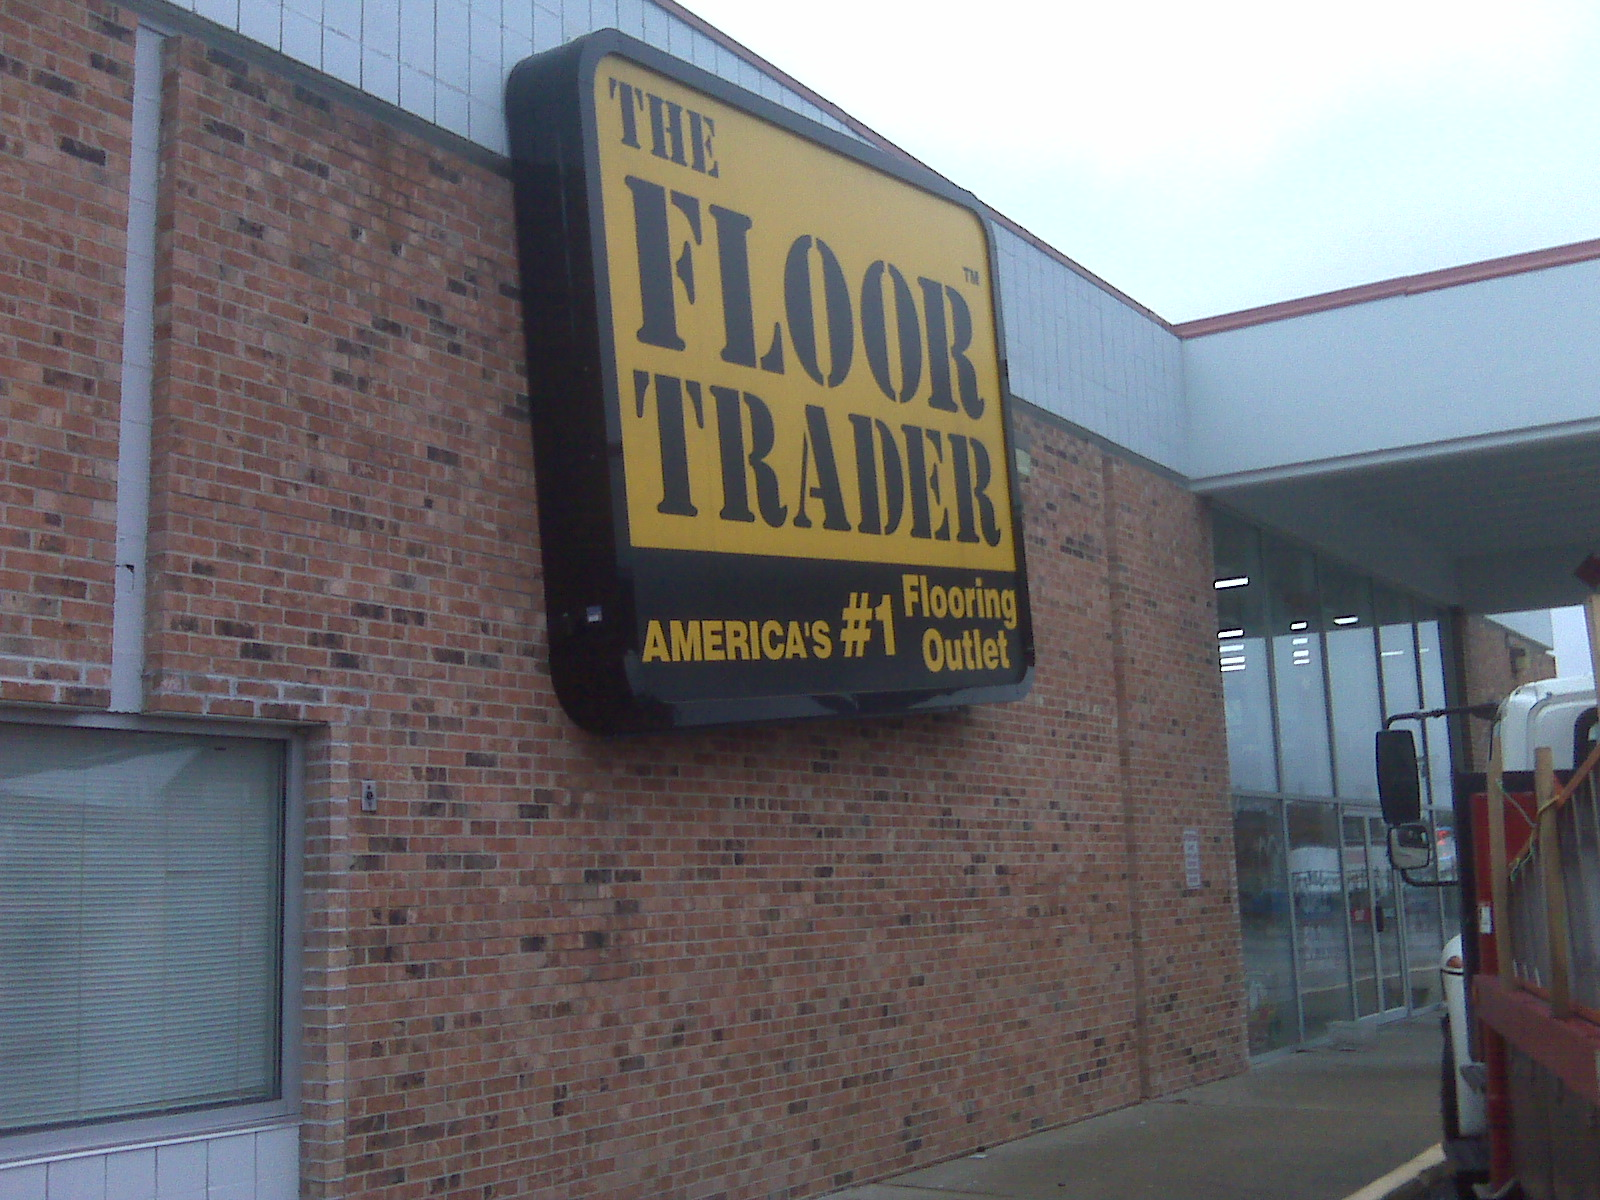 Floor-Trader-St-Louis-James-Mohrmann-2009-12-31